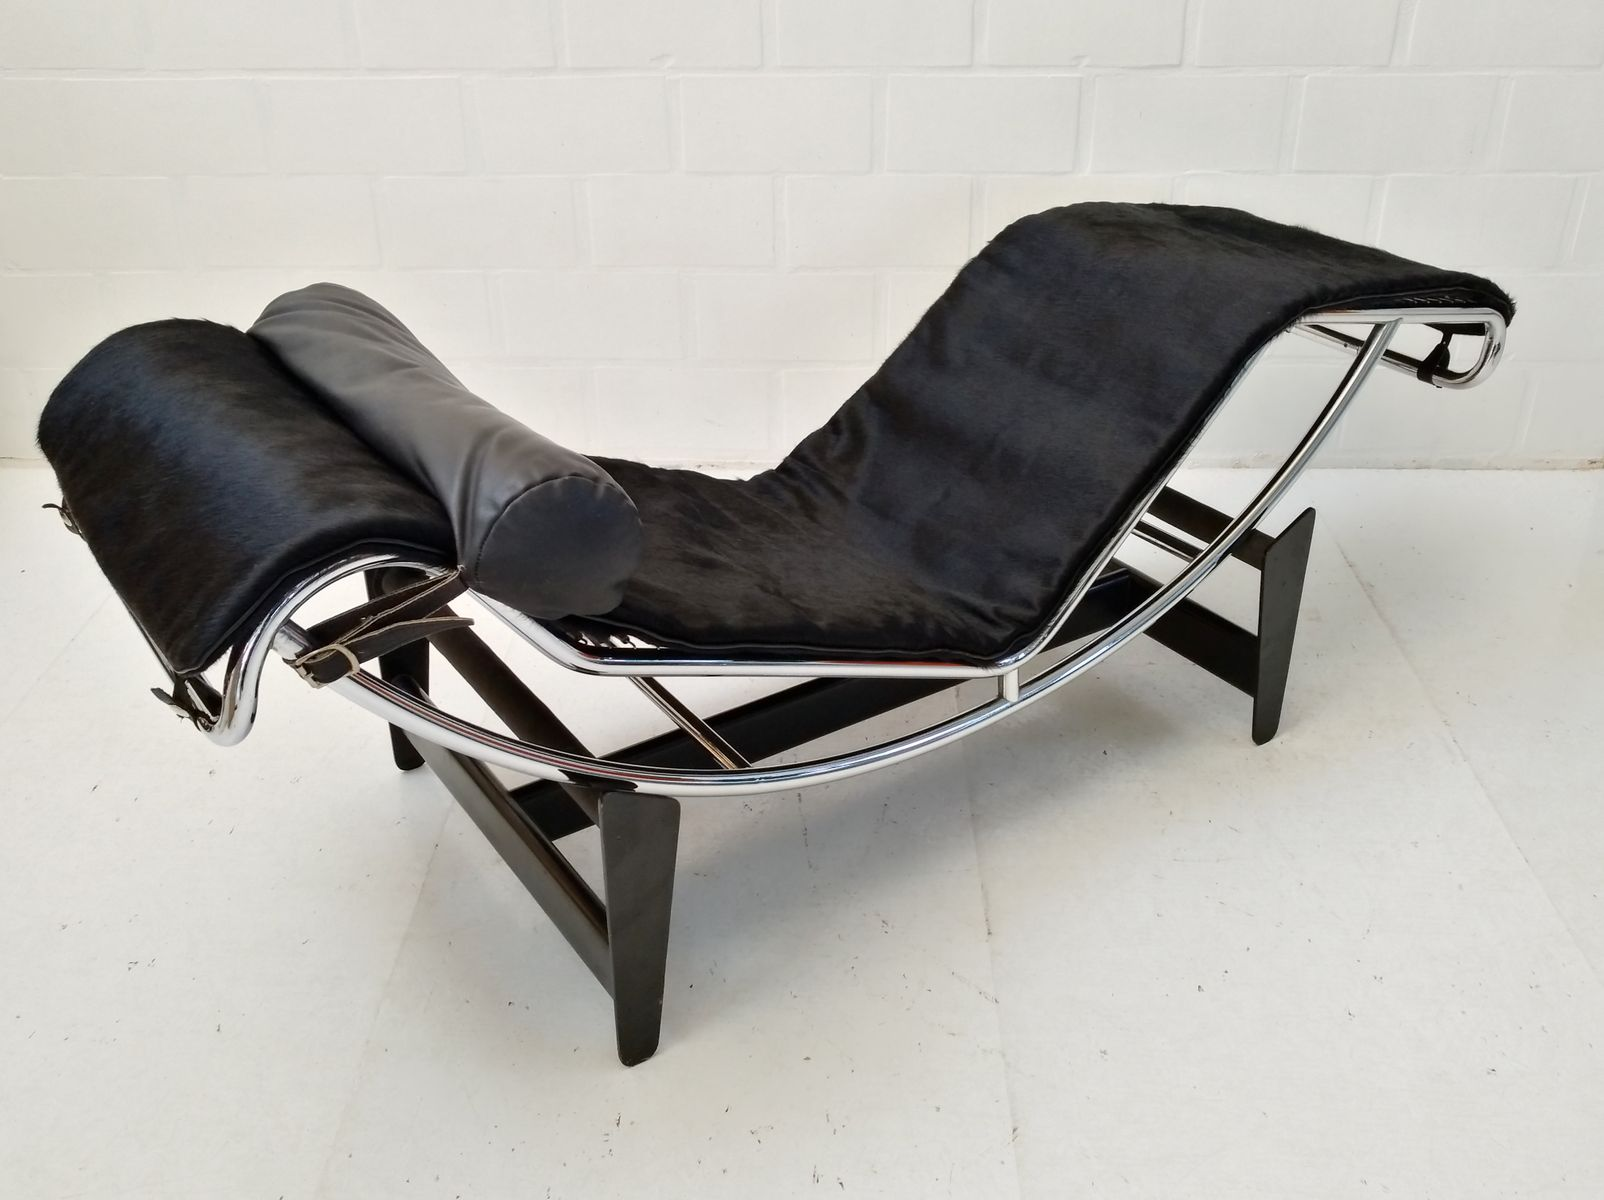 Chaise le corbusier prix chaise inspired by lc lounge - Chaise le corbusier prix ...